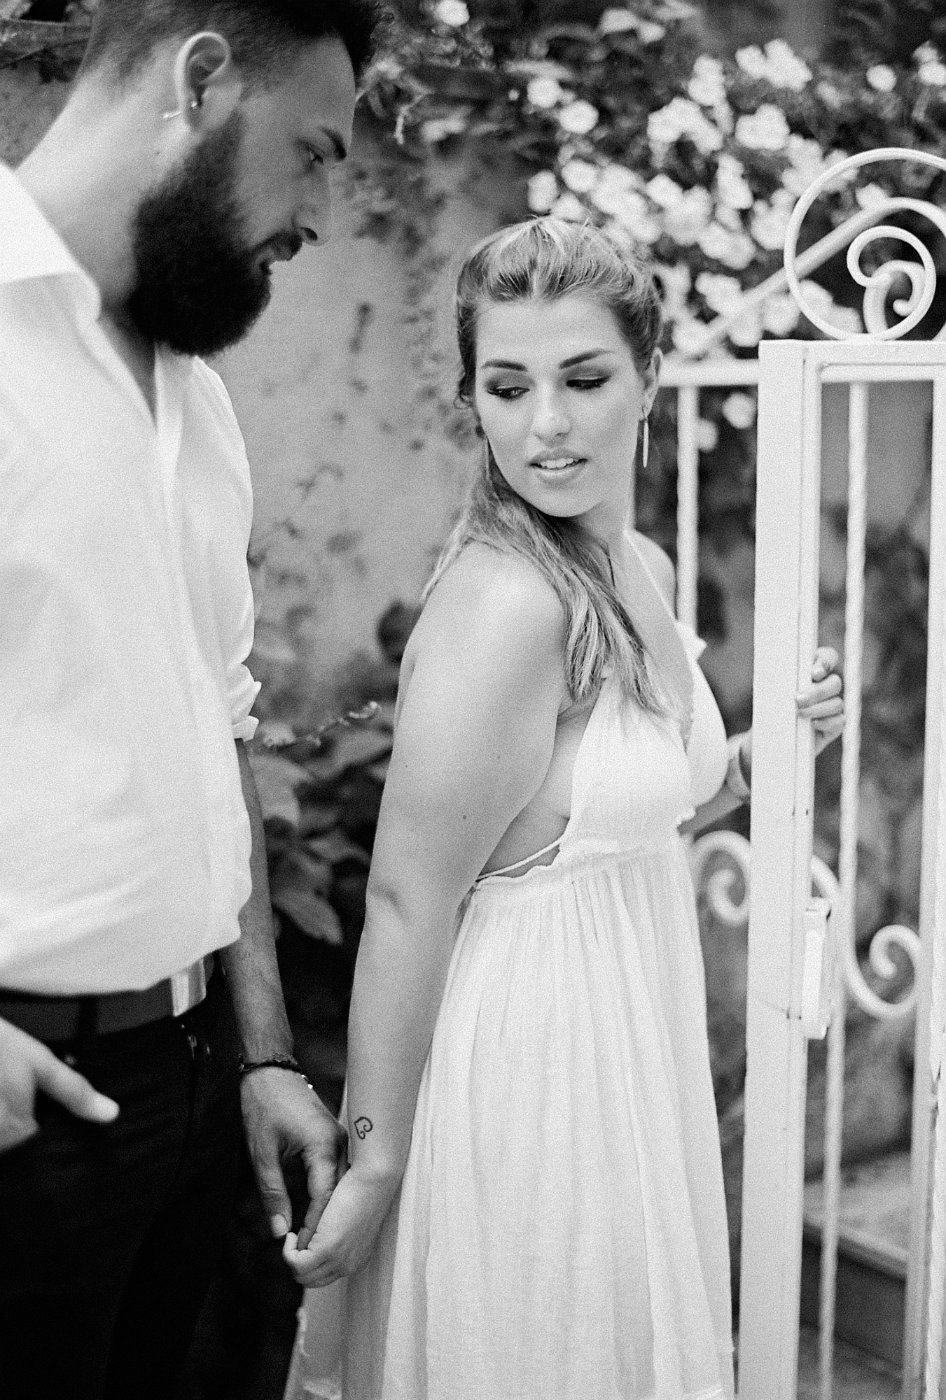 positano_italy_elopement_melanie_gabrielle_photography_059